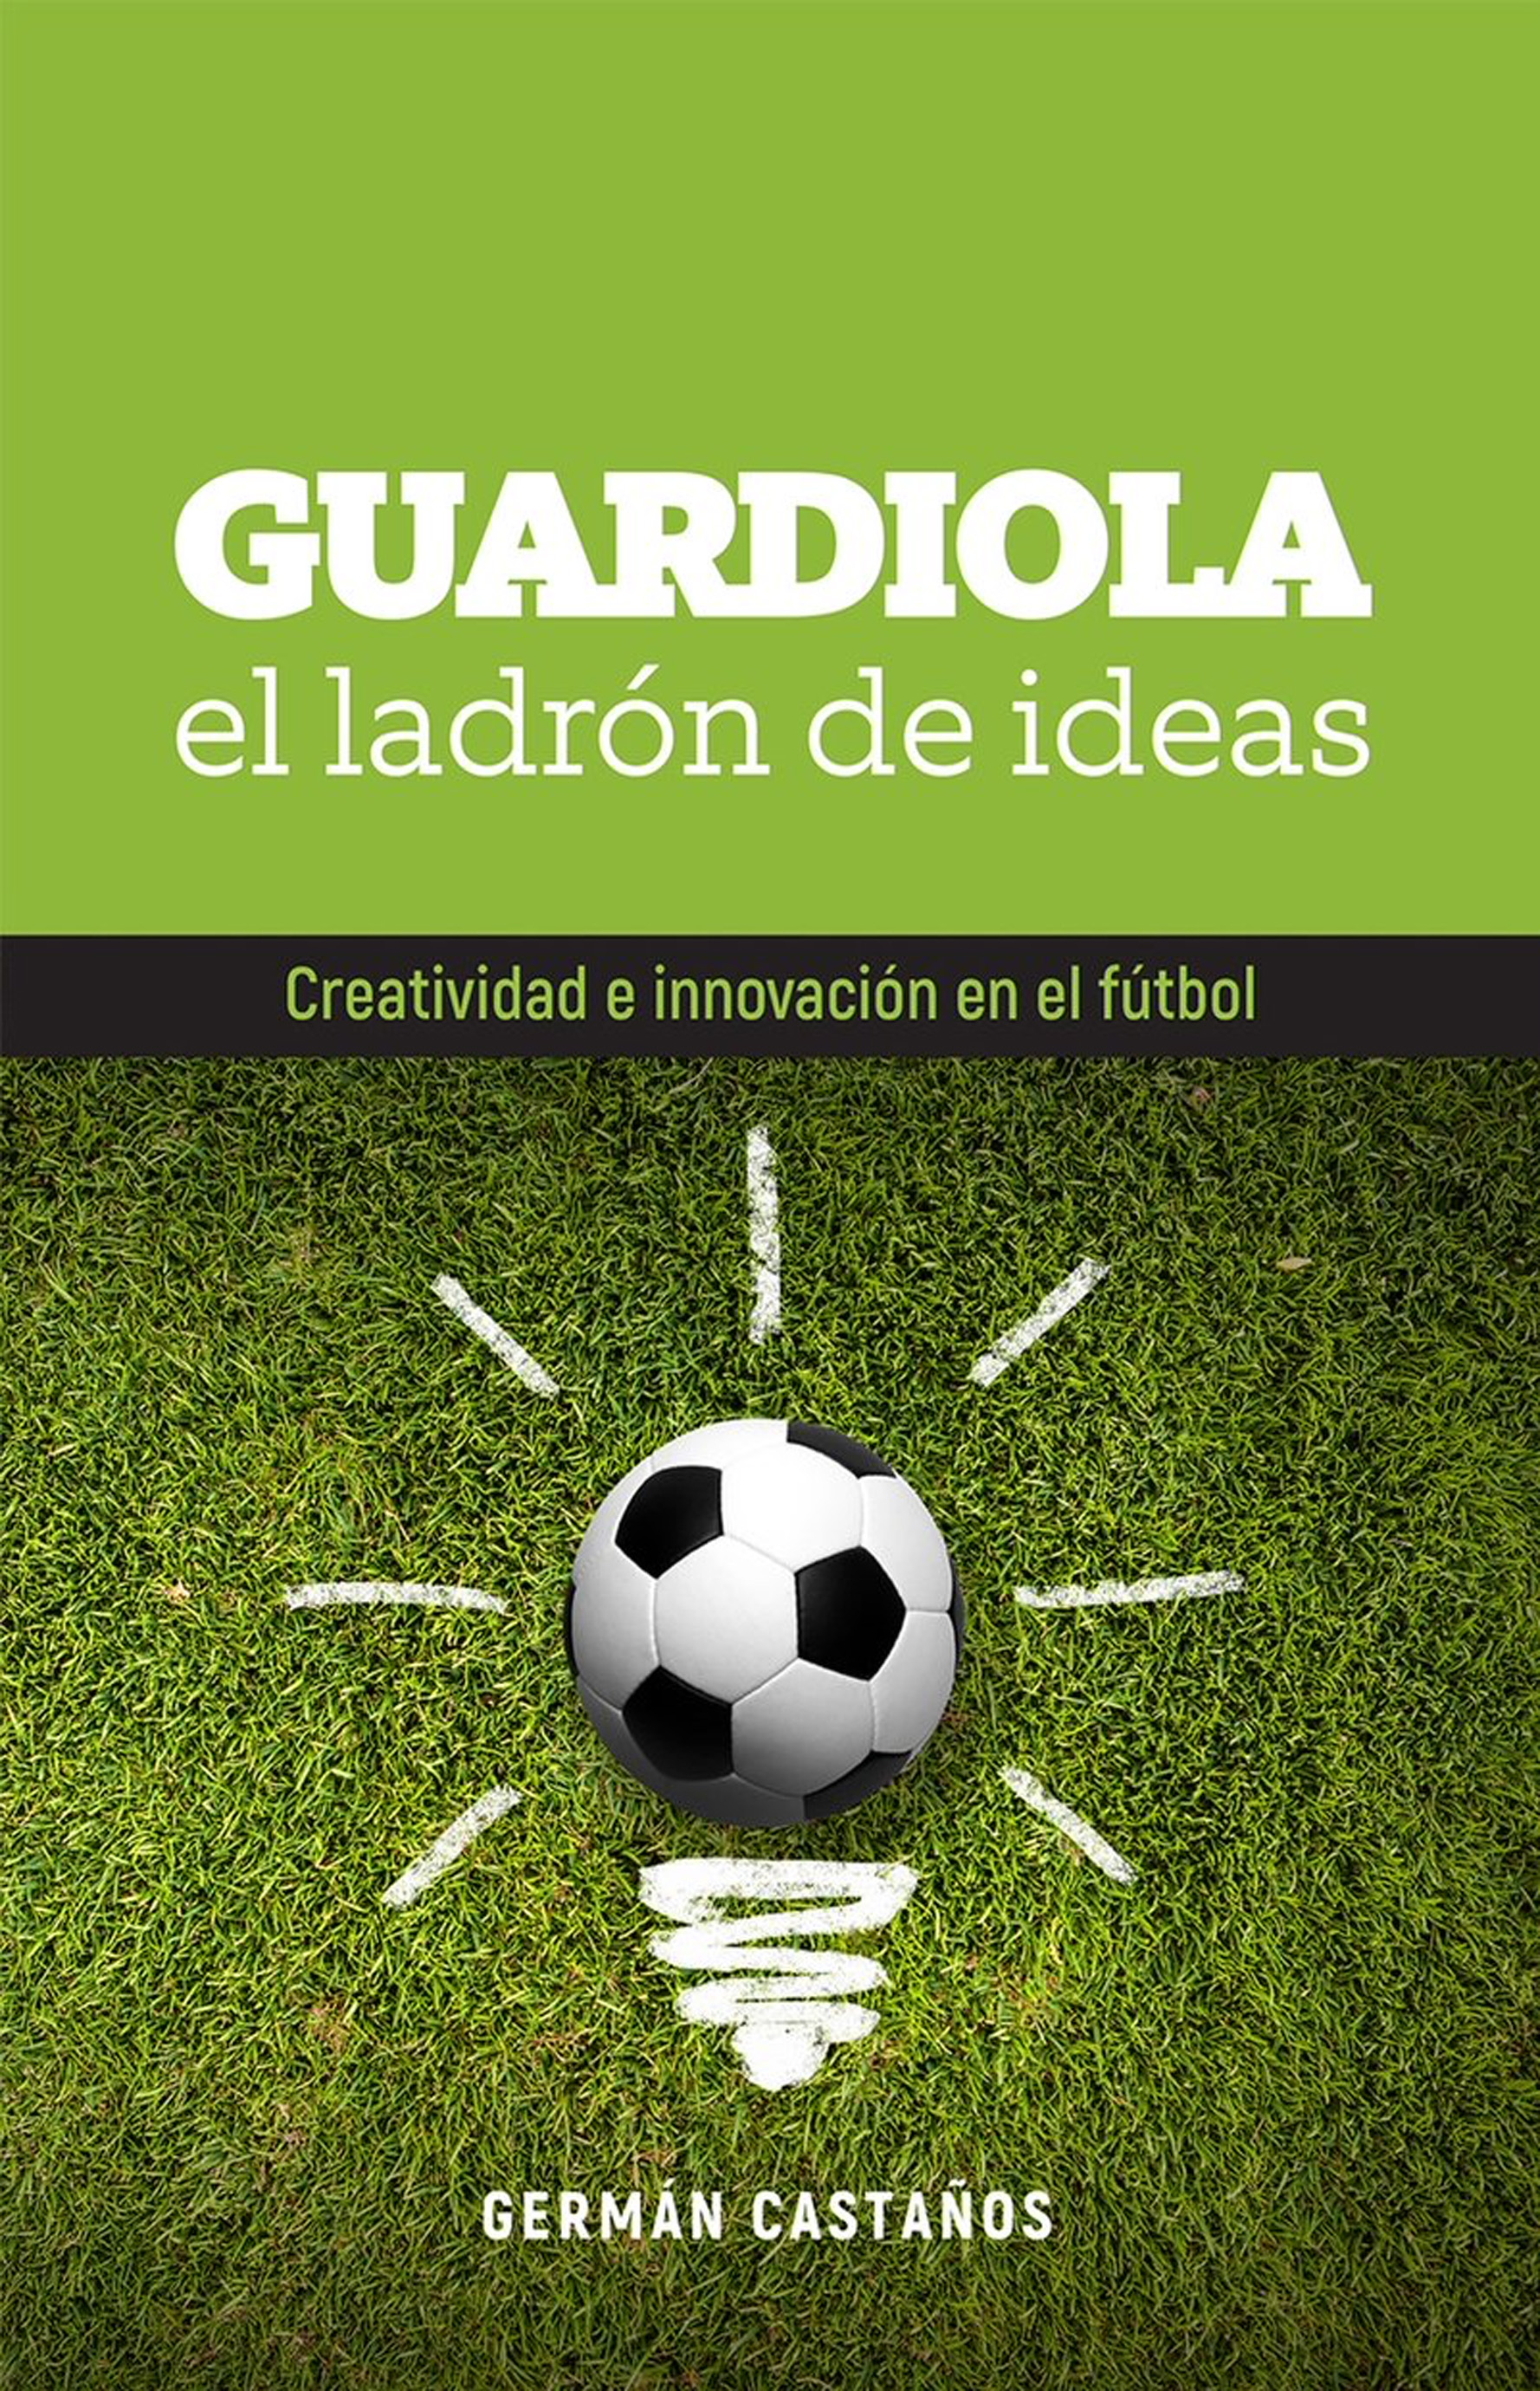 guardiola el ladron de ideas